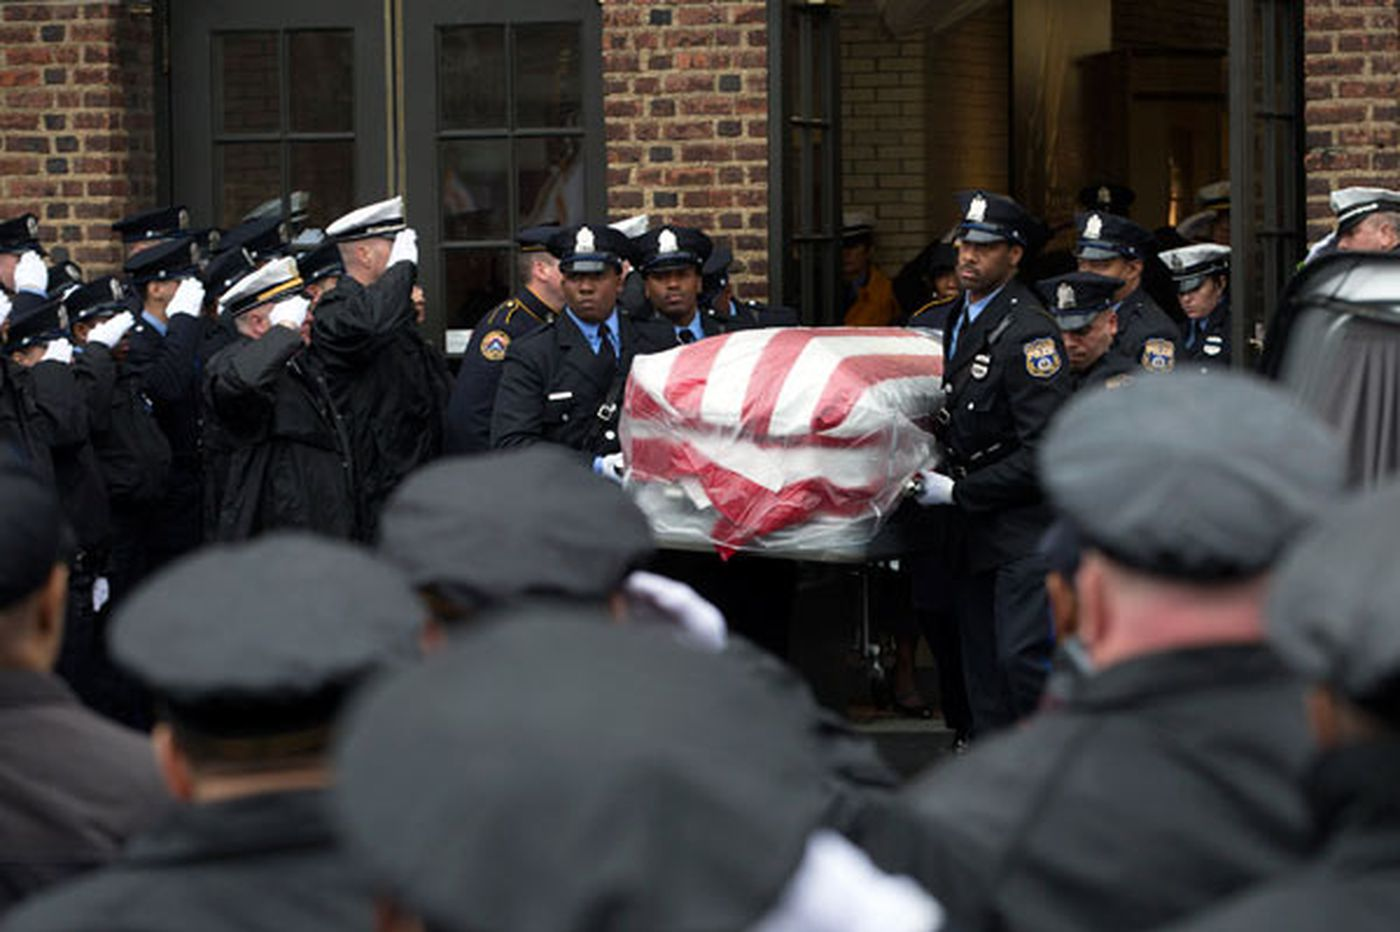 Most Philly police officers are silent heroes   Christine Flowers